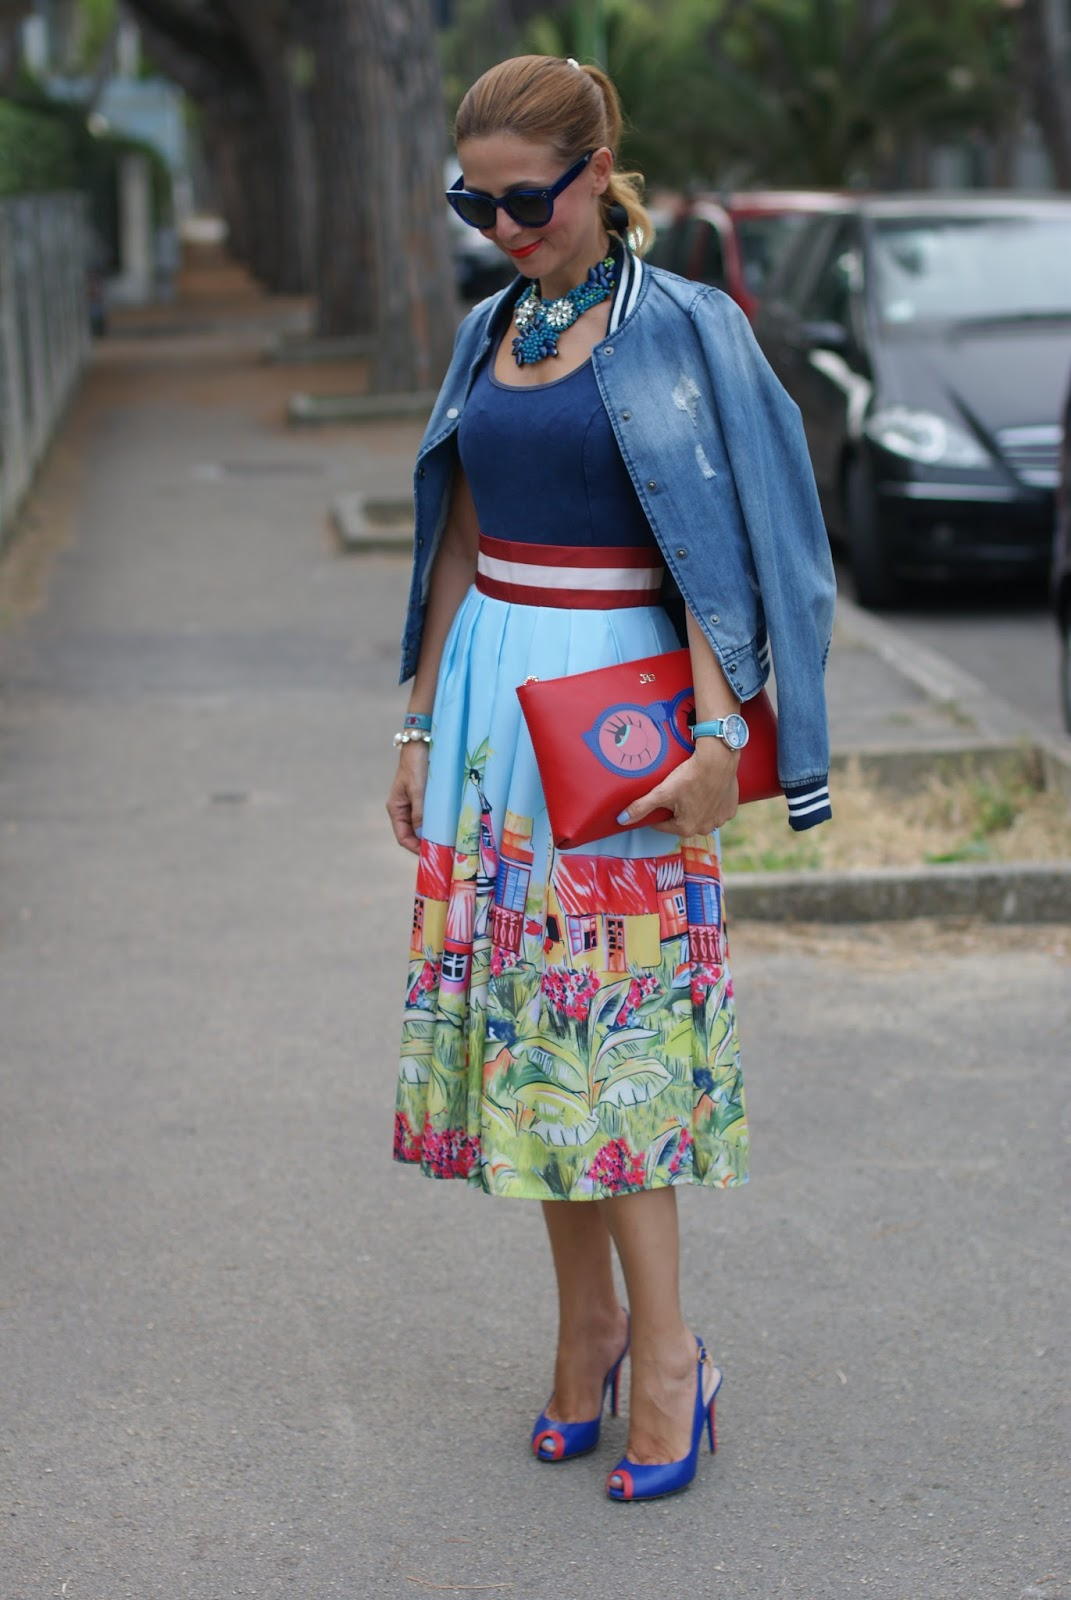 Hype Glasses new summer 2015 collection and Zaful Stella Jean lookalike midi skirt on Fashion and Cookies fashion blog